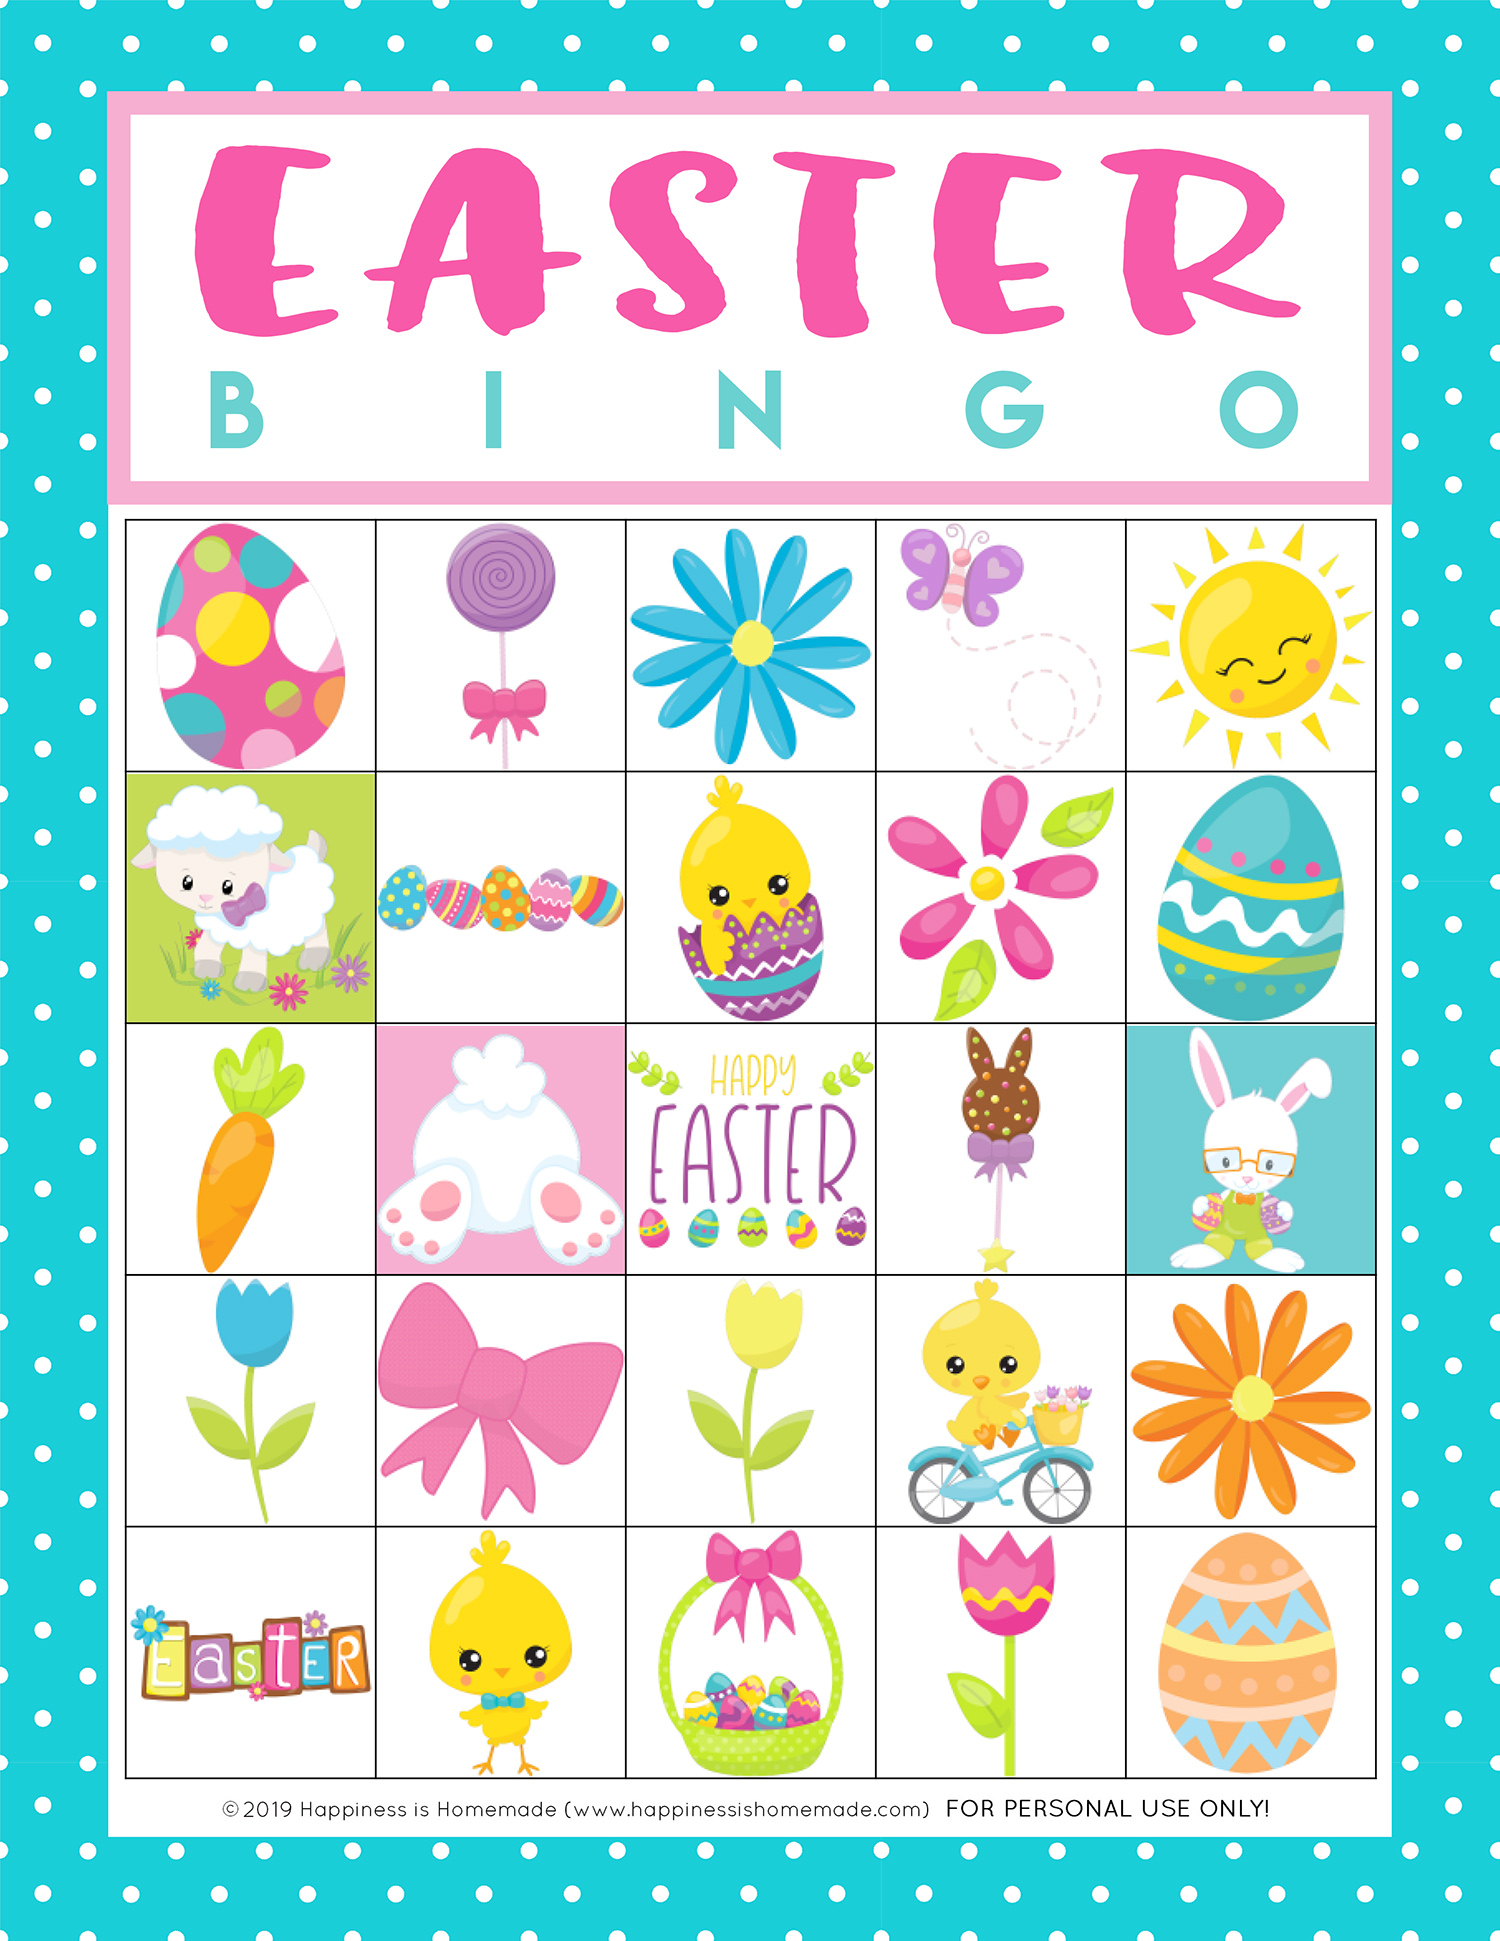 Free Printable Easter Bingo Game Cards